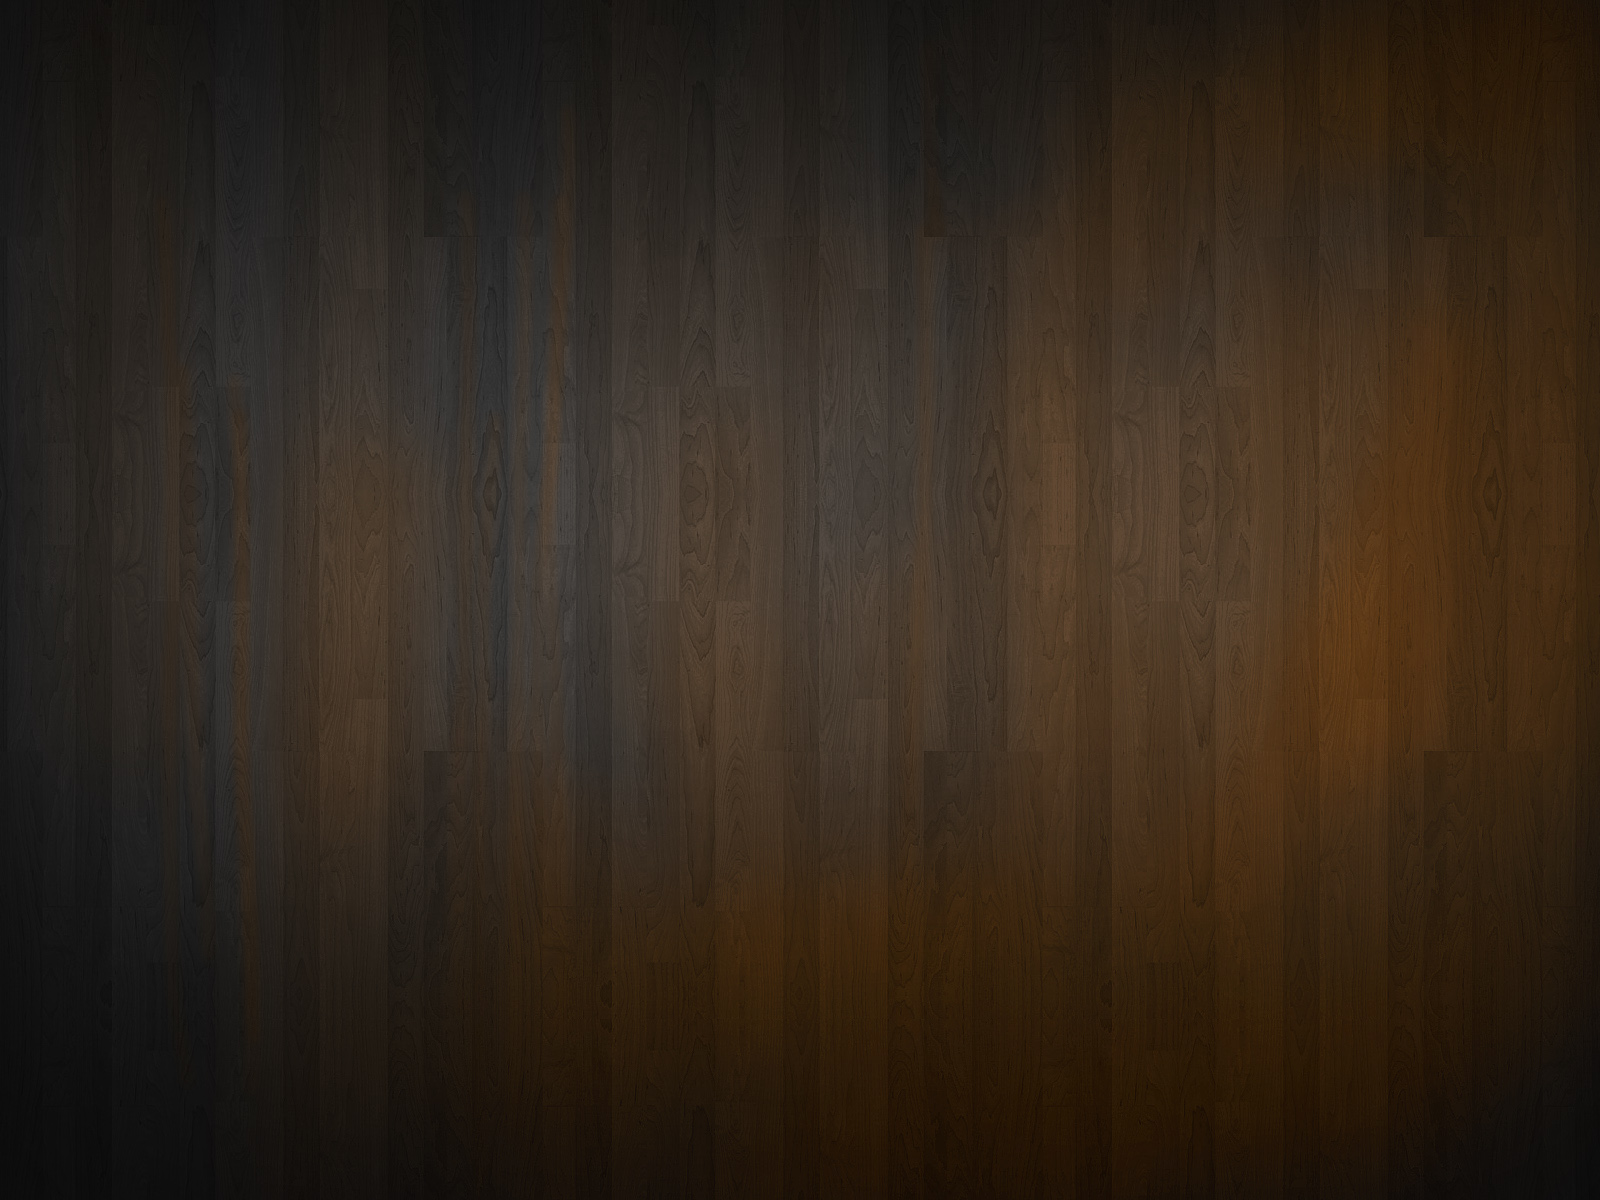 Holz wallpaper and hintergrund 1600x1200 id 74165 for Holz wallpaper